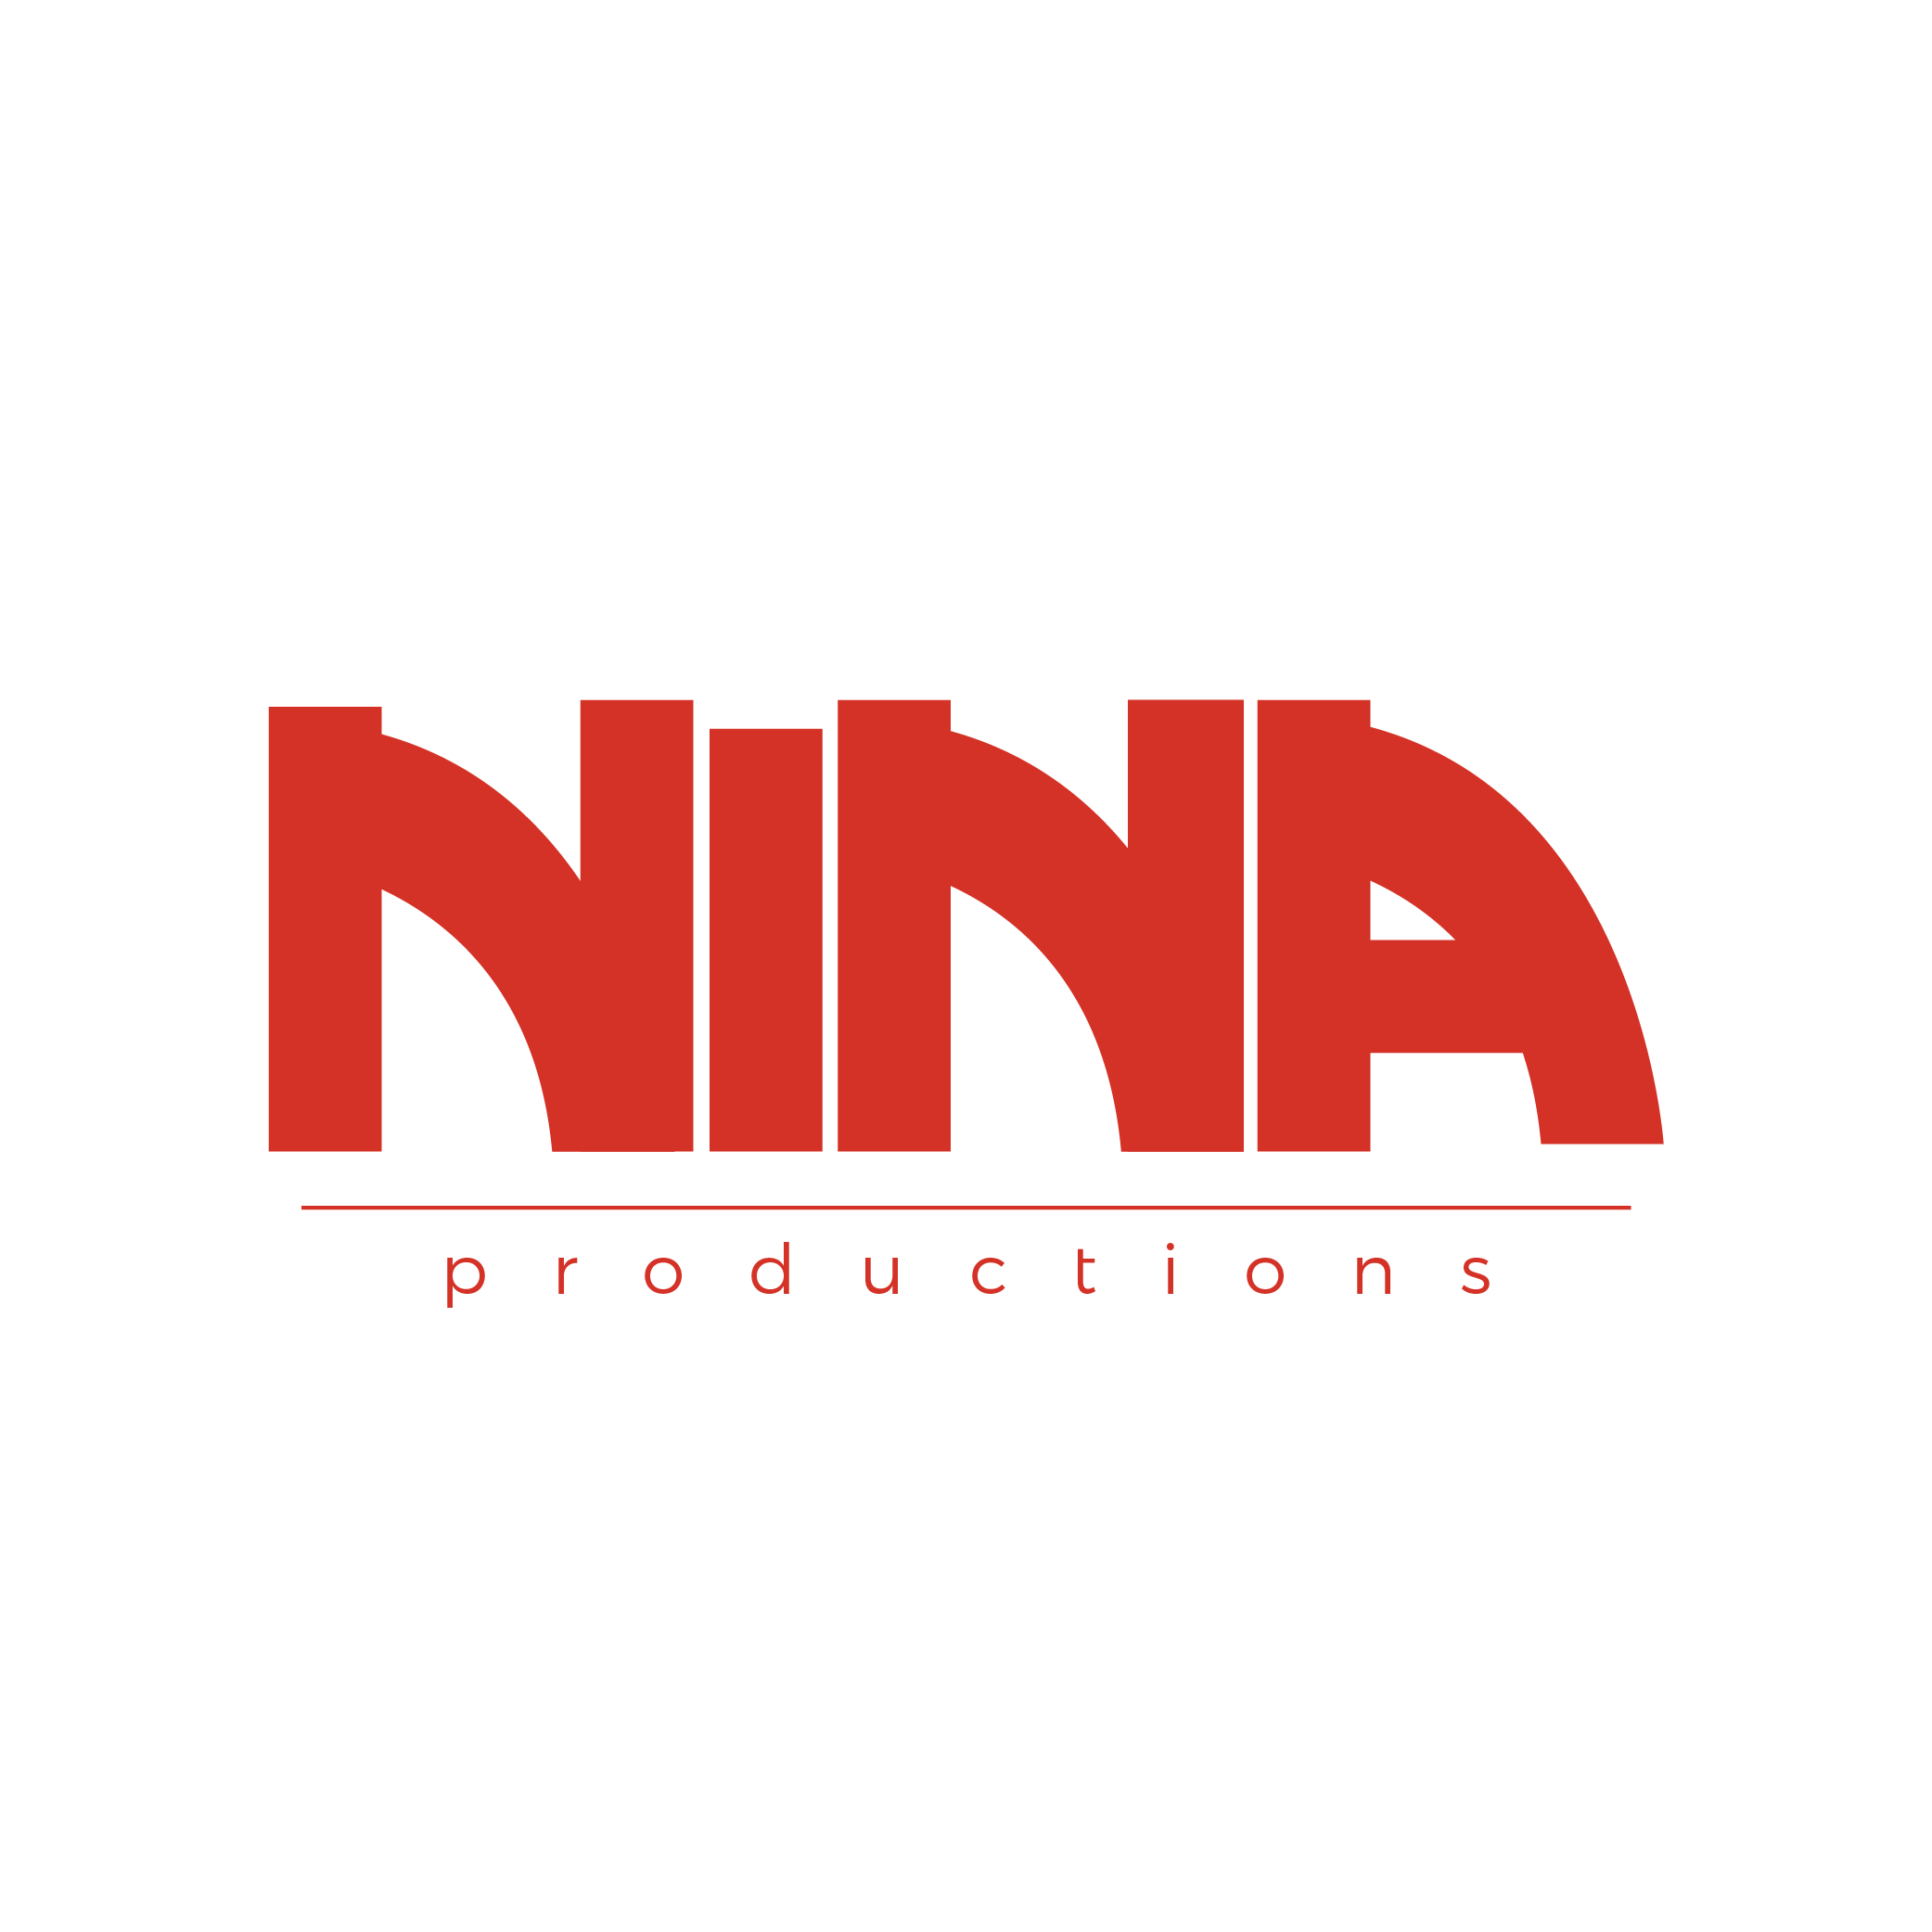 Nina Productions logo final _text only_red.png